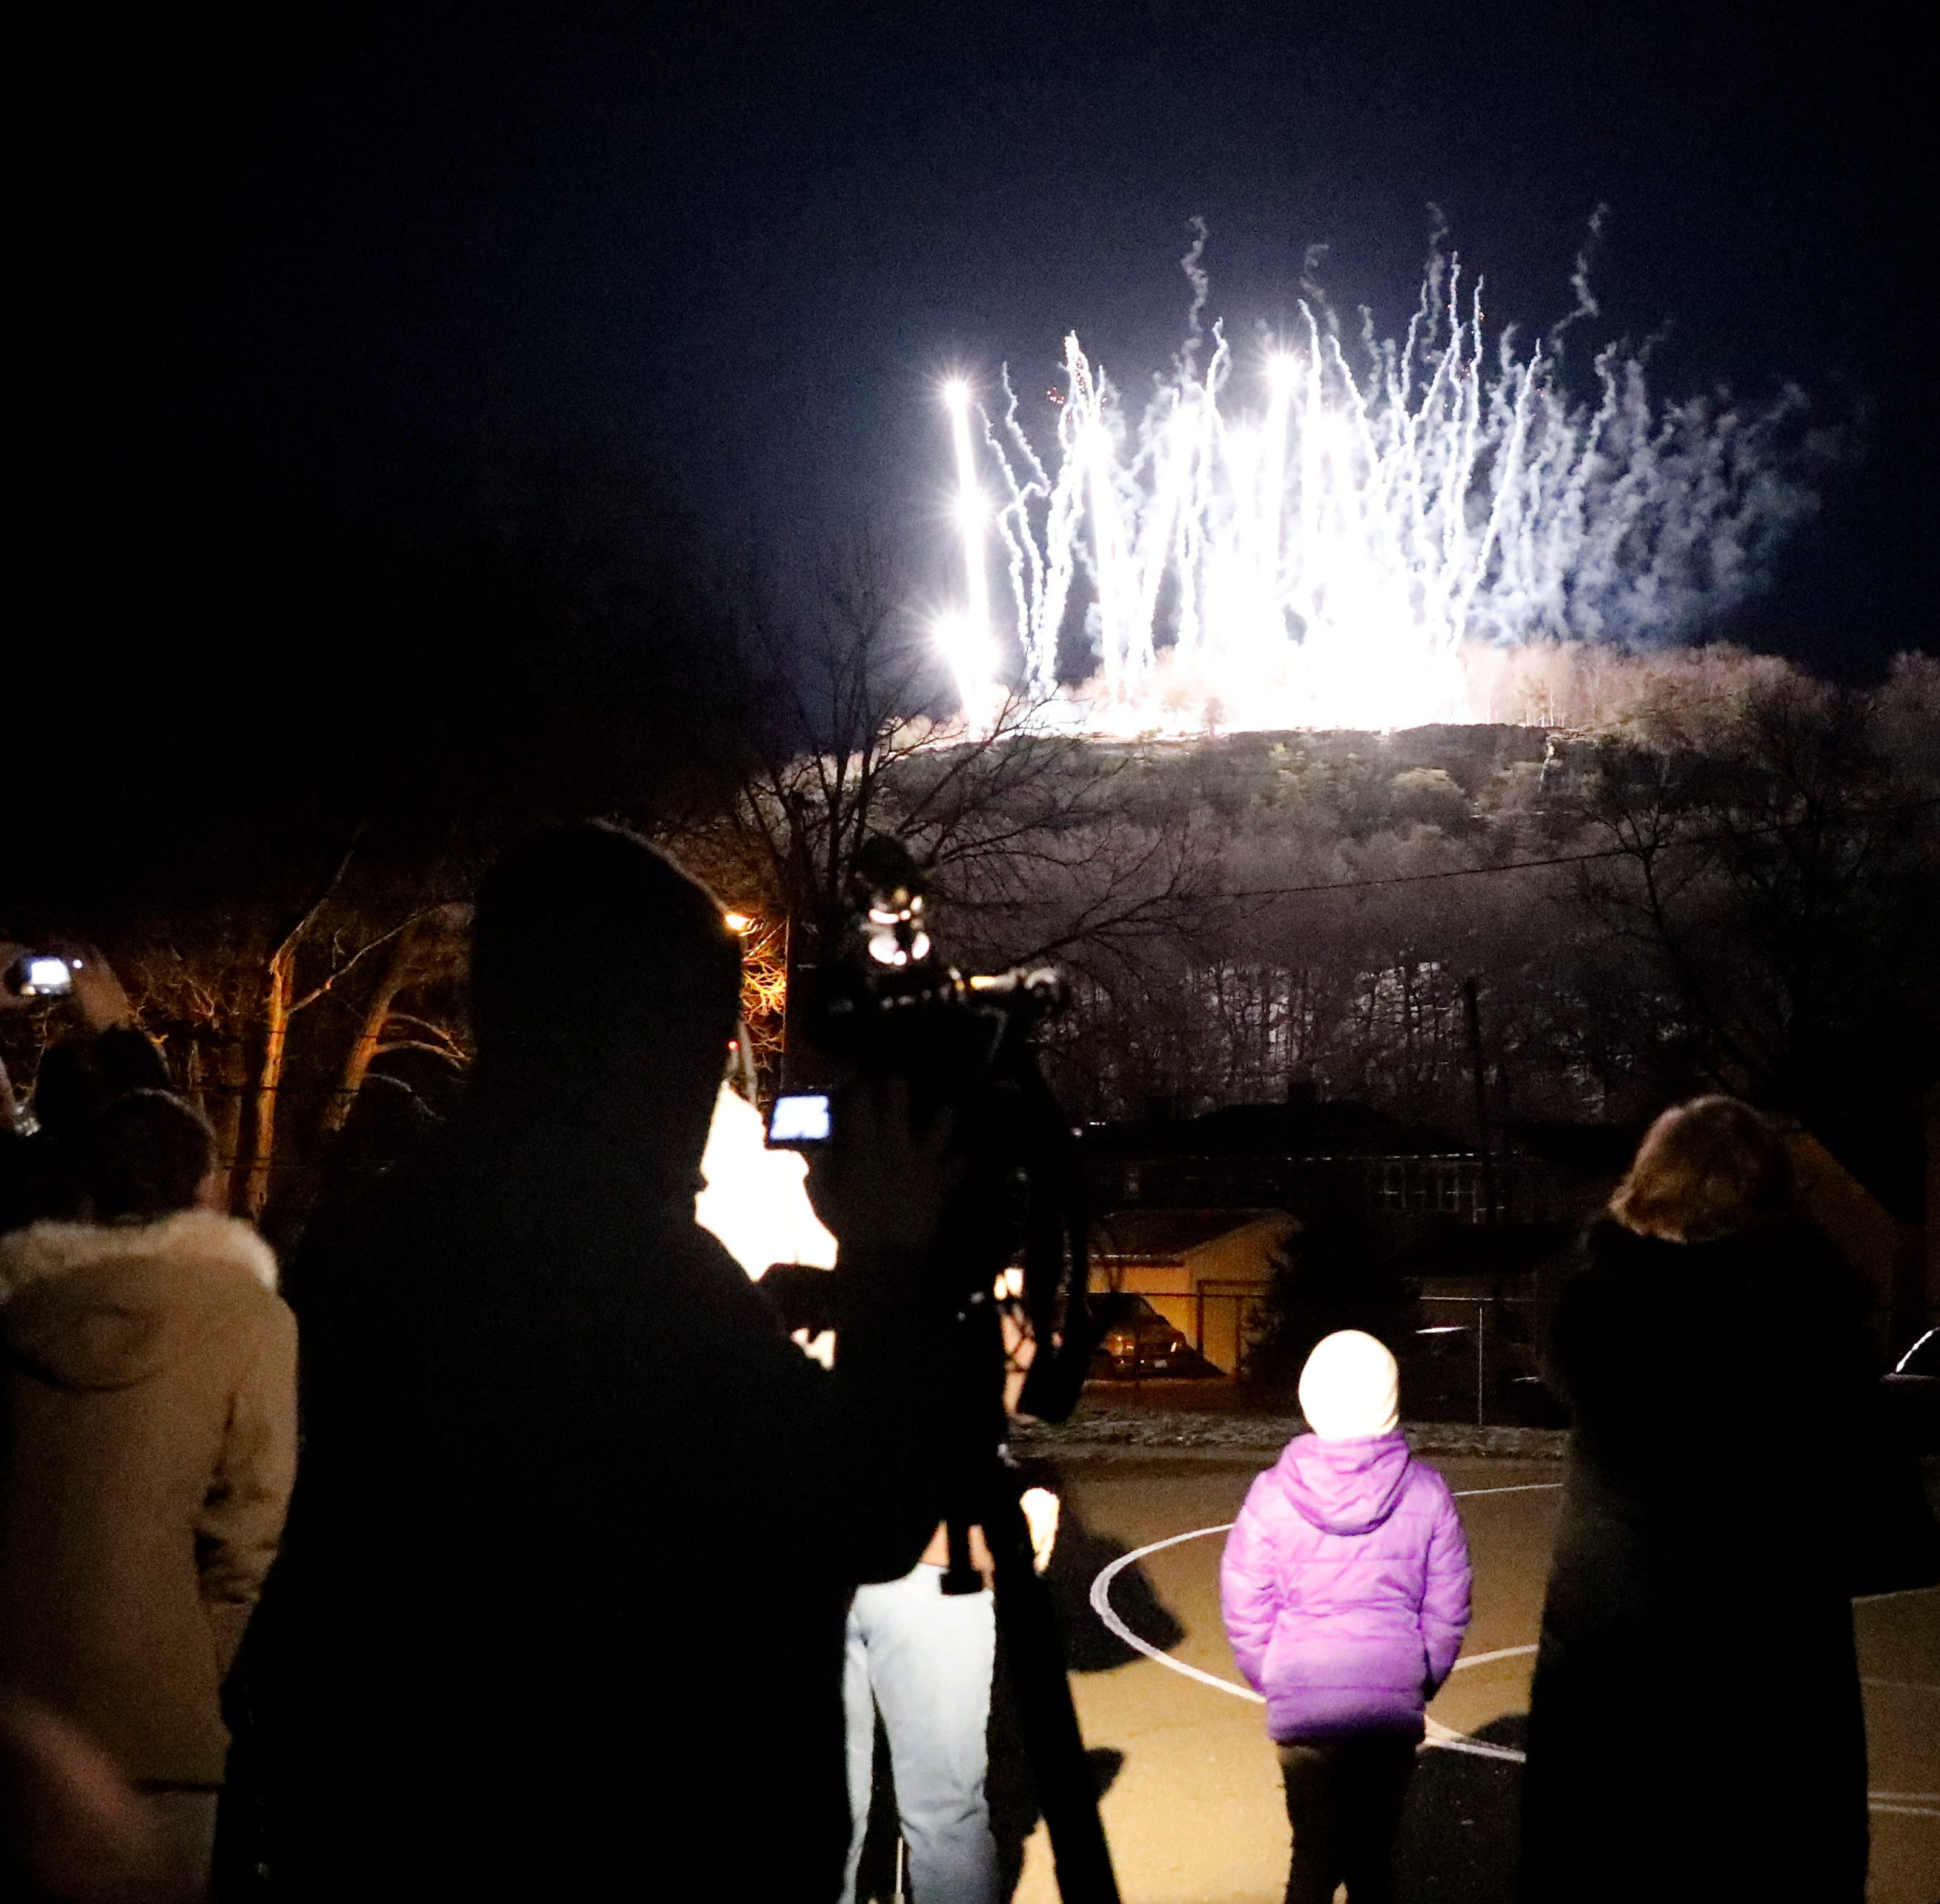 'A symbol of our city': Lancaster makes history, illuminates Mount Pleasant for first time